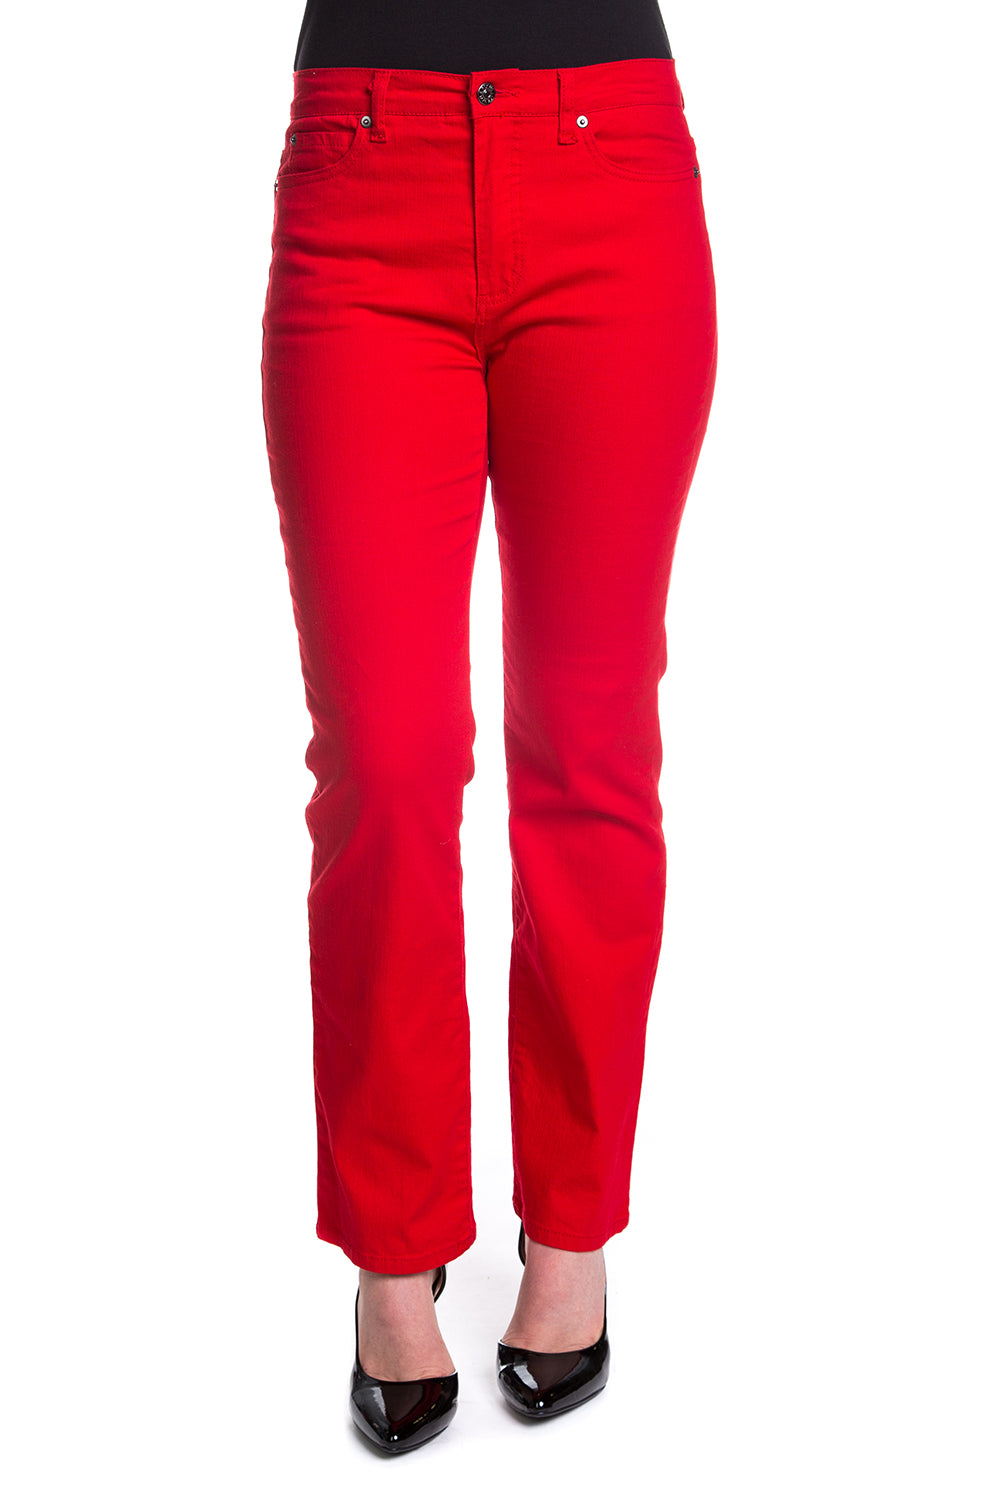 Type 4 Code Red Pants